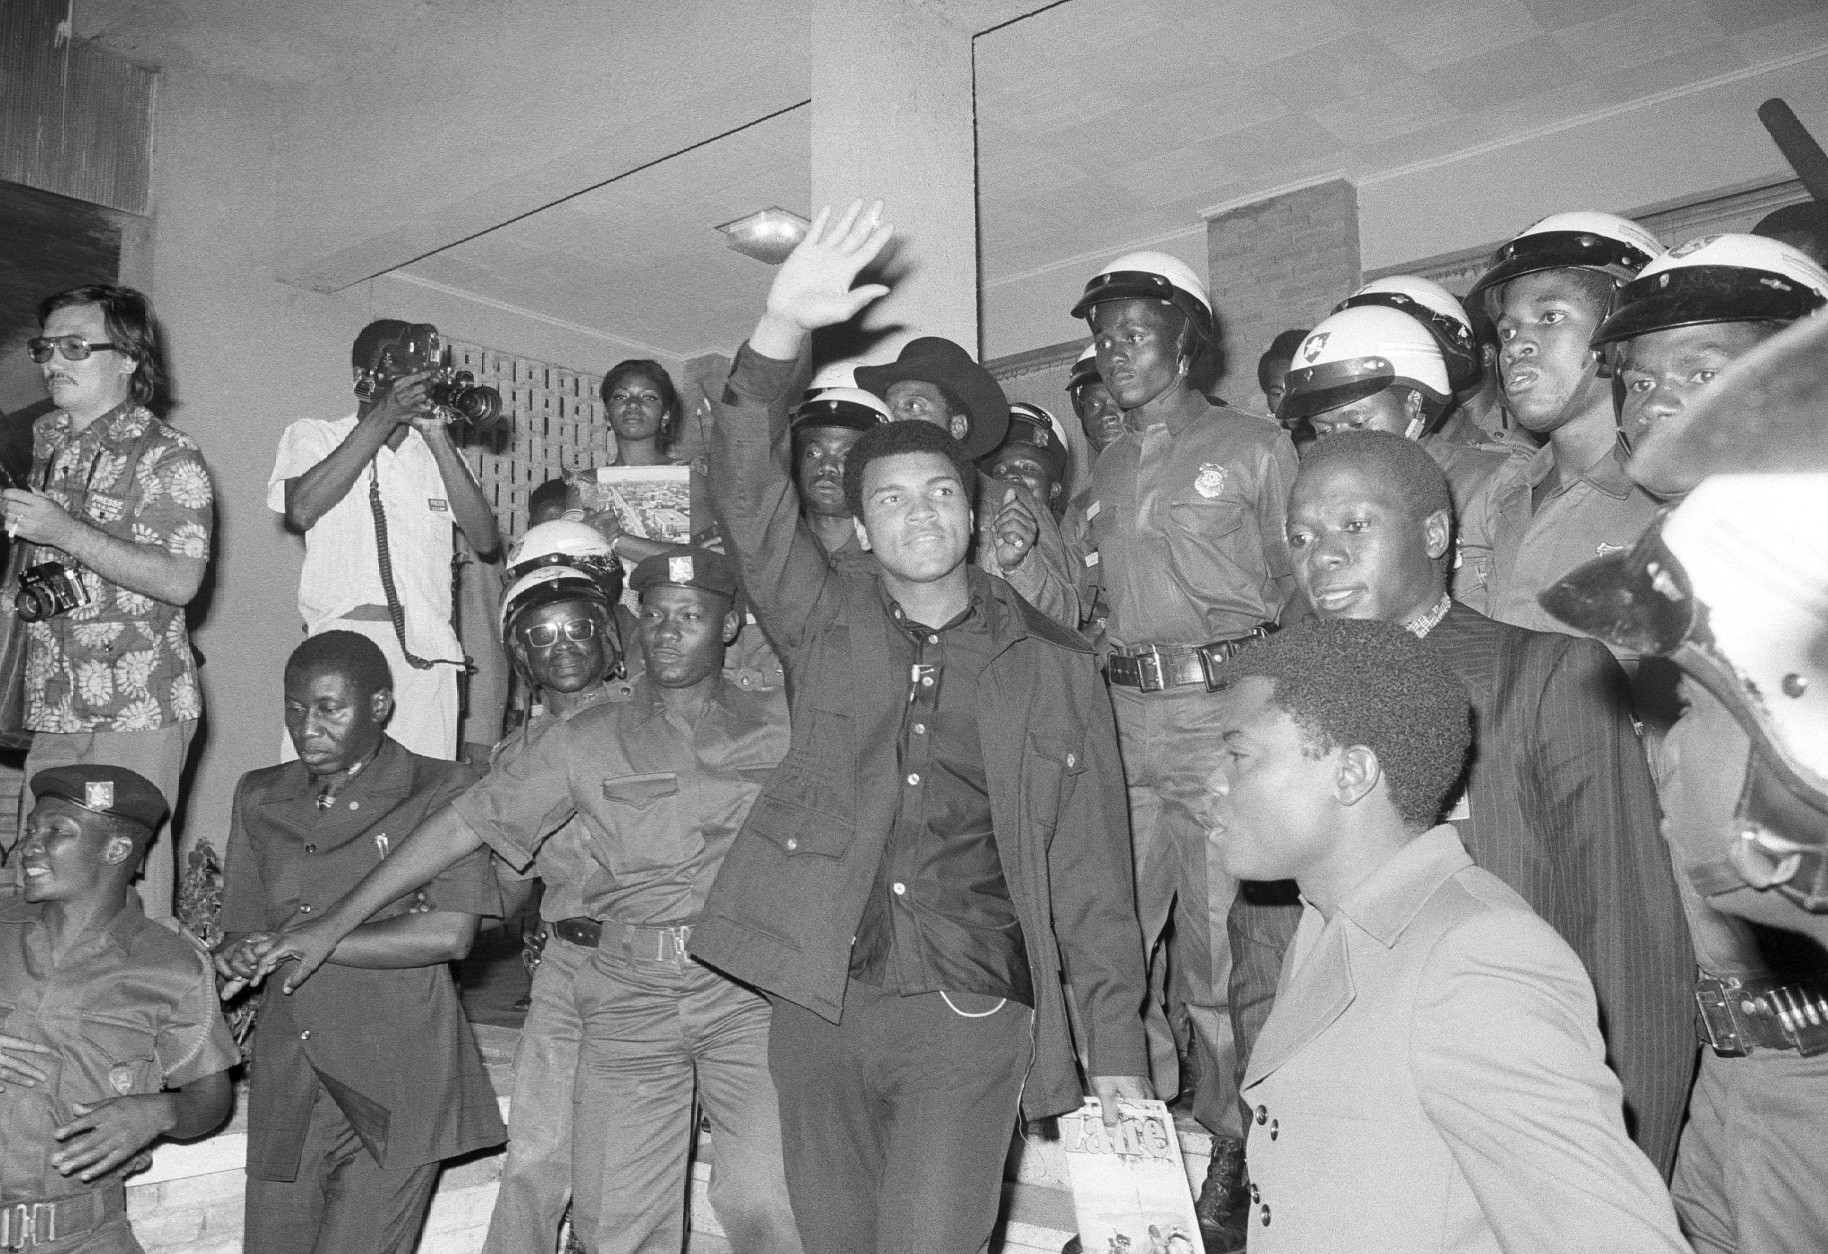 FILE - In this Sept. 11, 1974, file photo, heavyweight title challenger Muhammad Ali, surrounded by Zaire soldiers, waves to crowd upon his arrival in Kinshasha, Zaire. Ali is in Zaire for a fight against George Foreman. Ali, the magnificent heavyweight champion whose fast fists and irrepressible personality transcended sports and captivated the world, has died according to a statement released by his family Friday, June 3, 2016. He was 74. (AP Photo/Horst Faas, File)